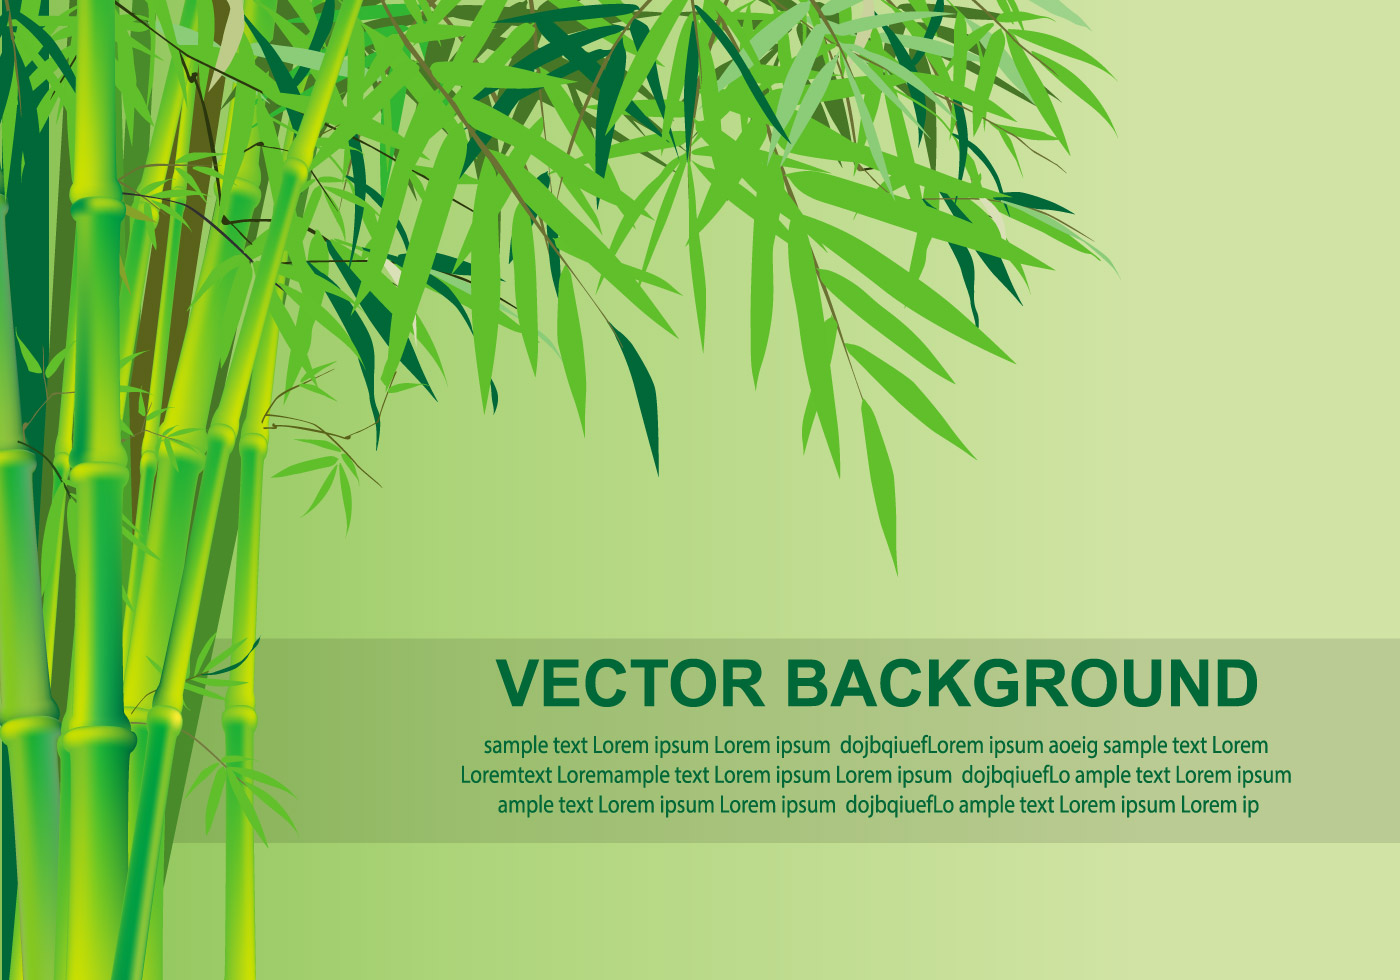 bamboo vector background download free vectors clipart graphics vector art https www vecteezy com vector art 137146 bamboo vector background